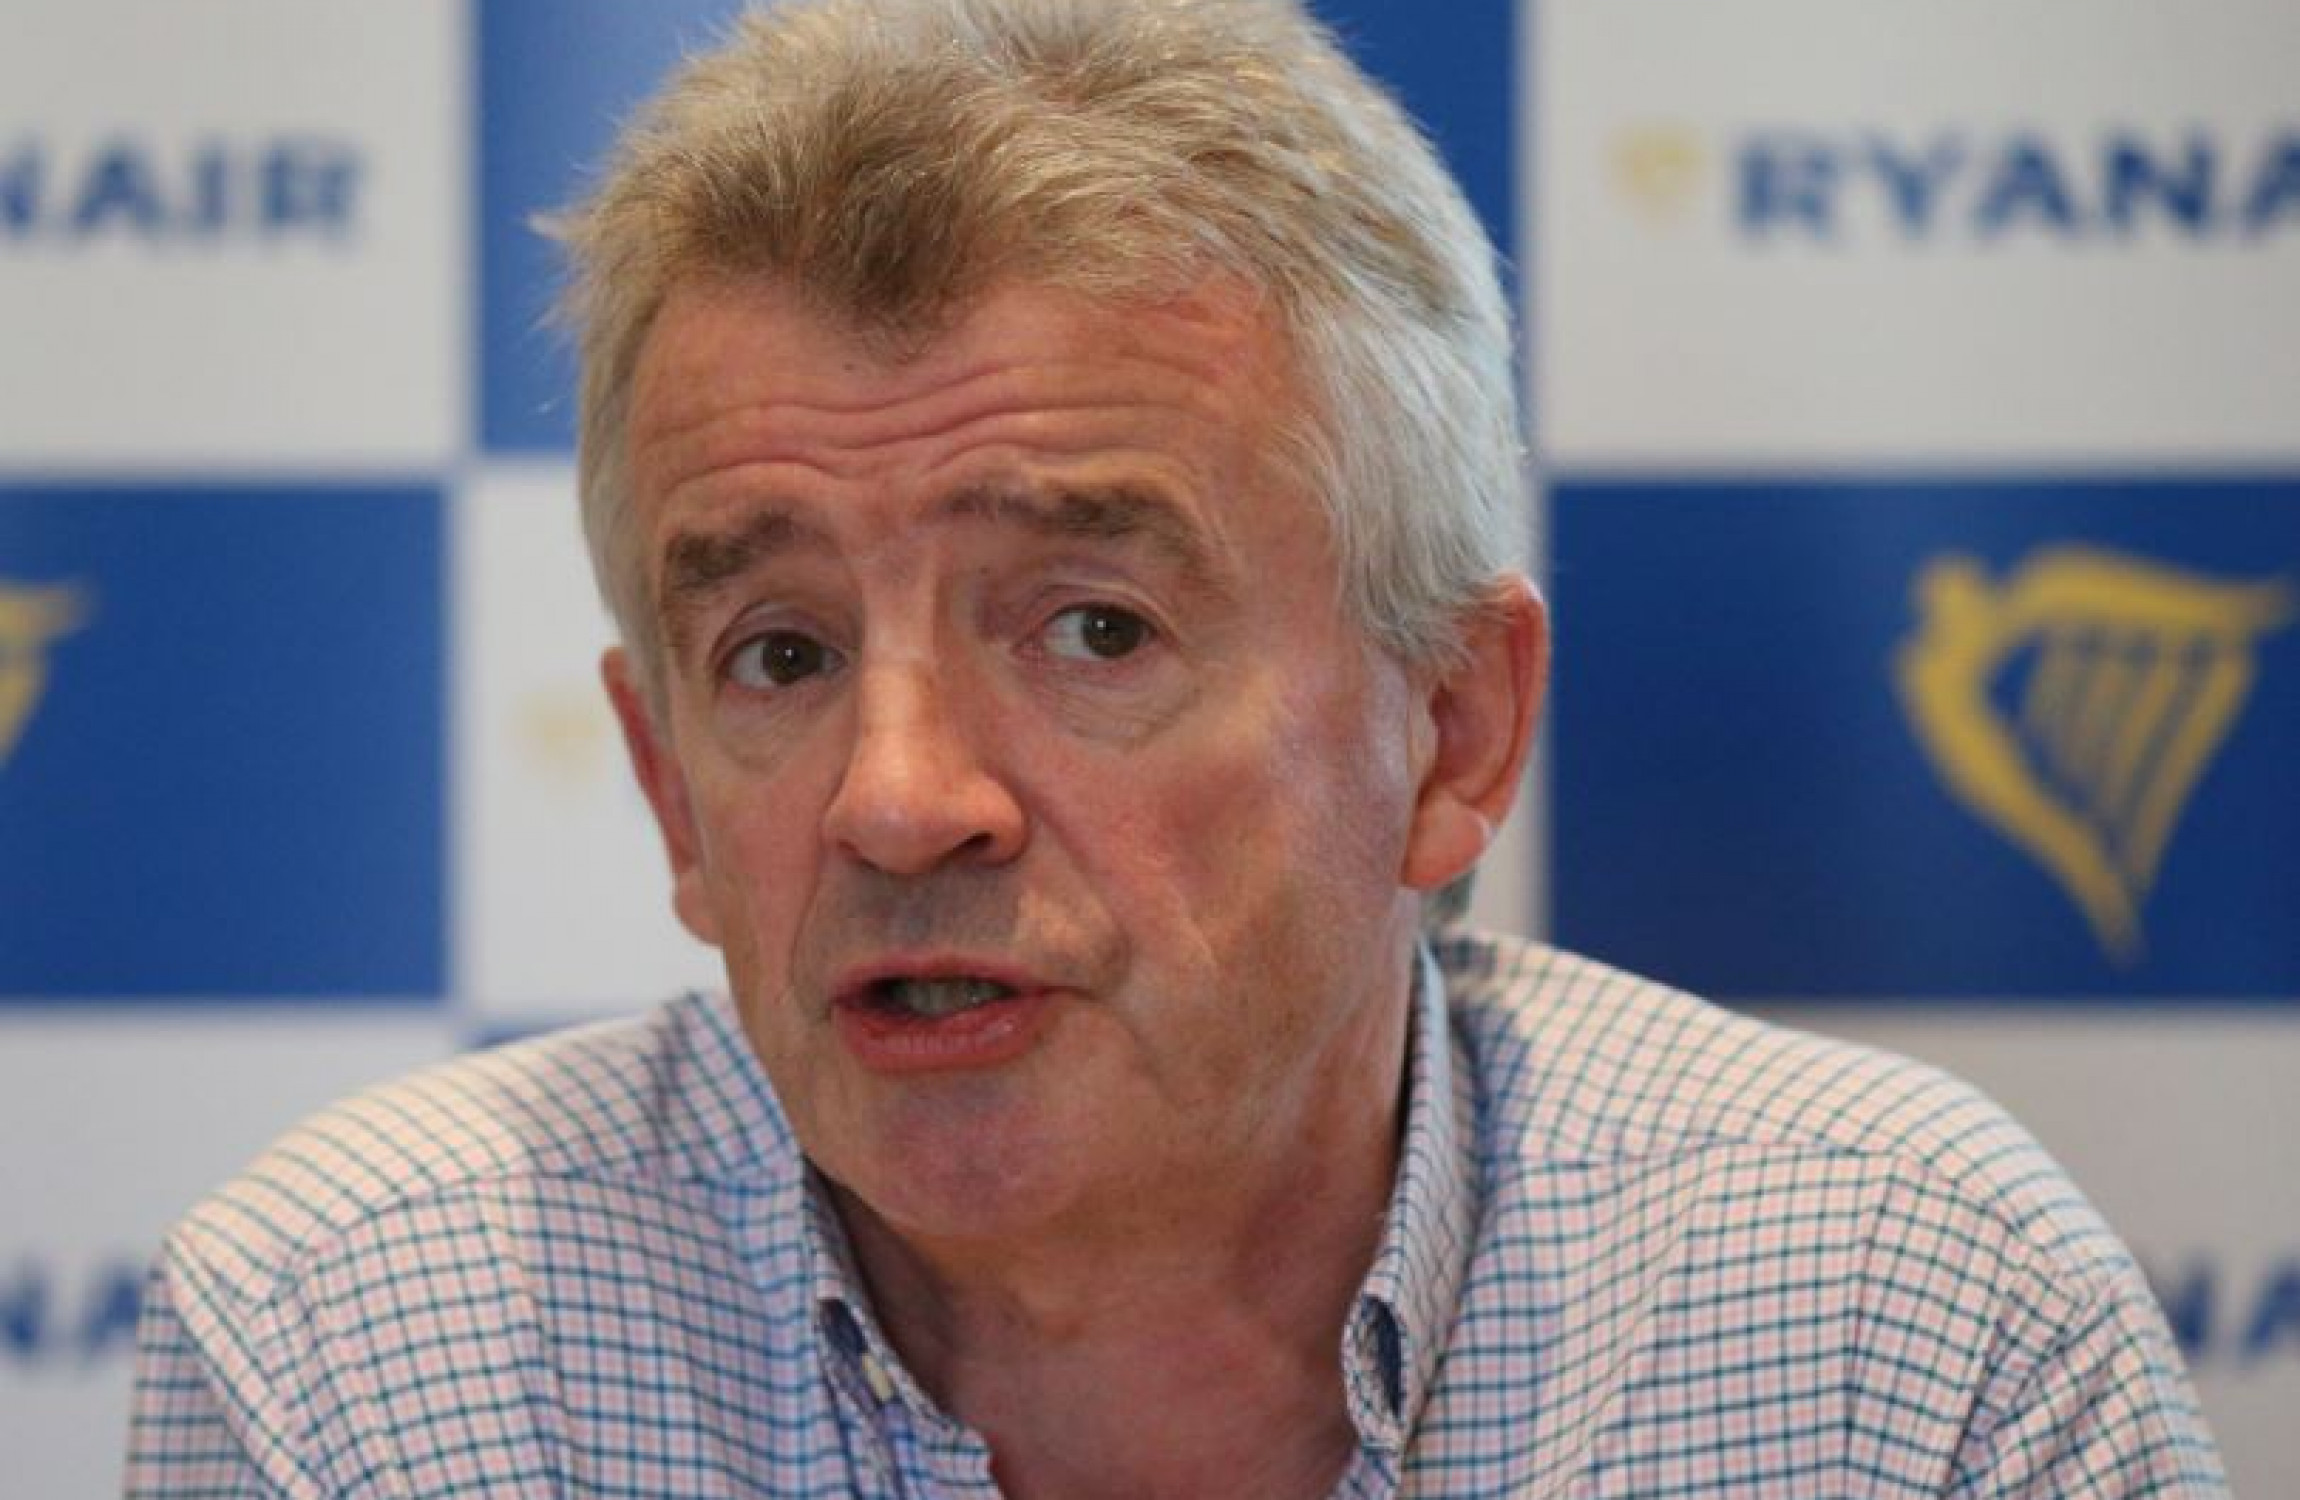 RyanAir is Cancelling Hundreds of Flights Right Now